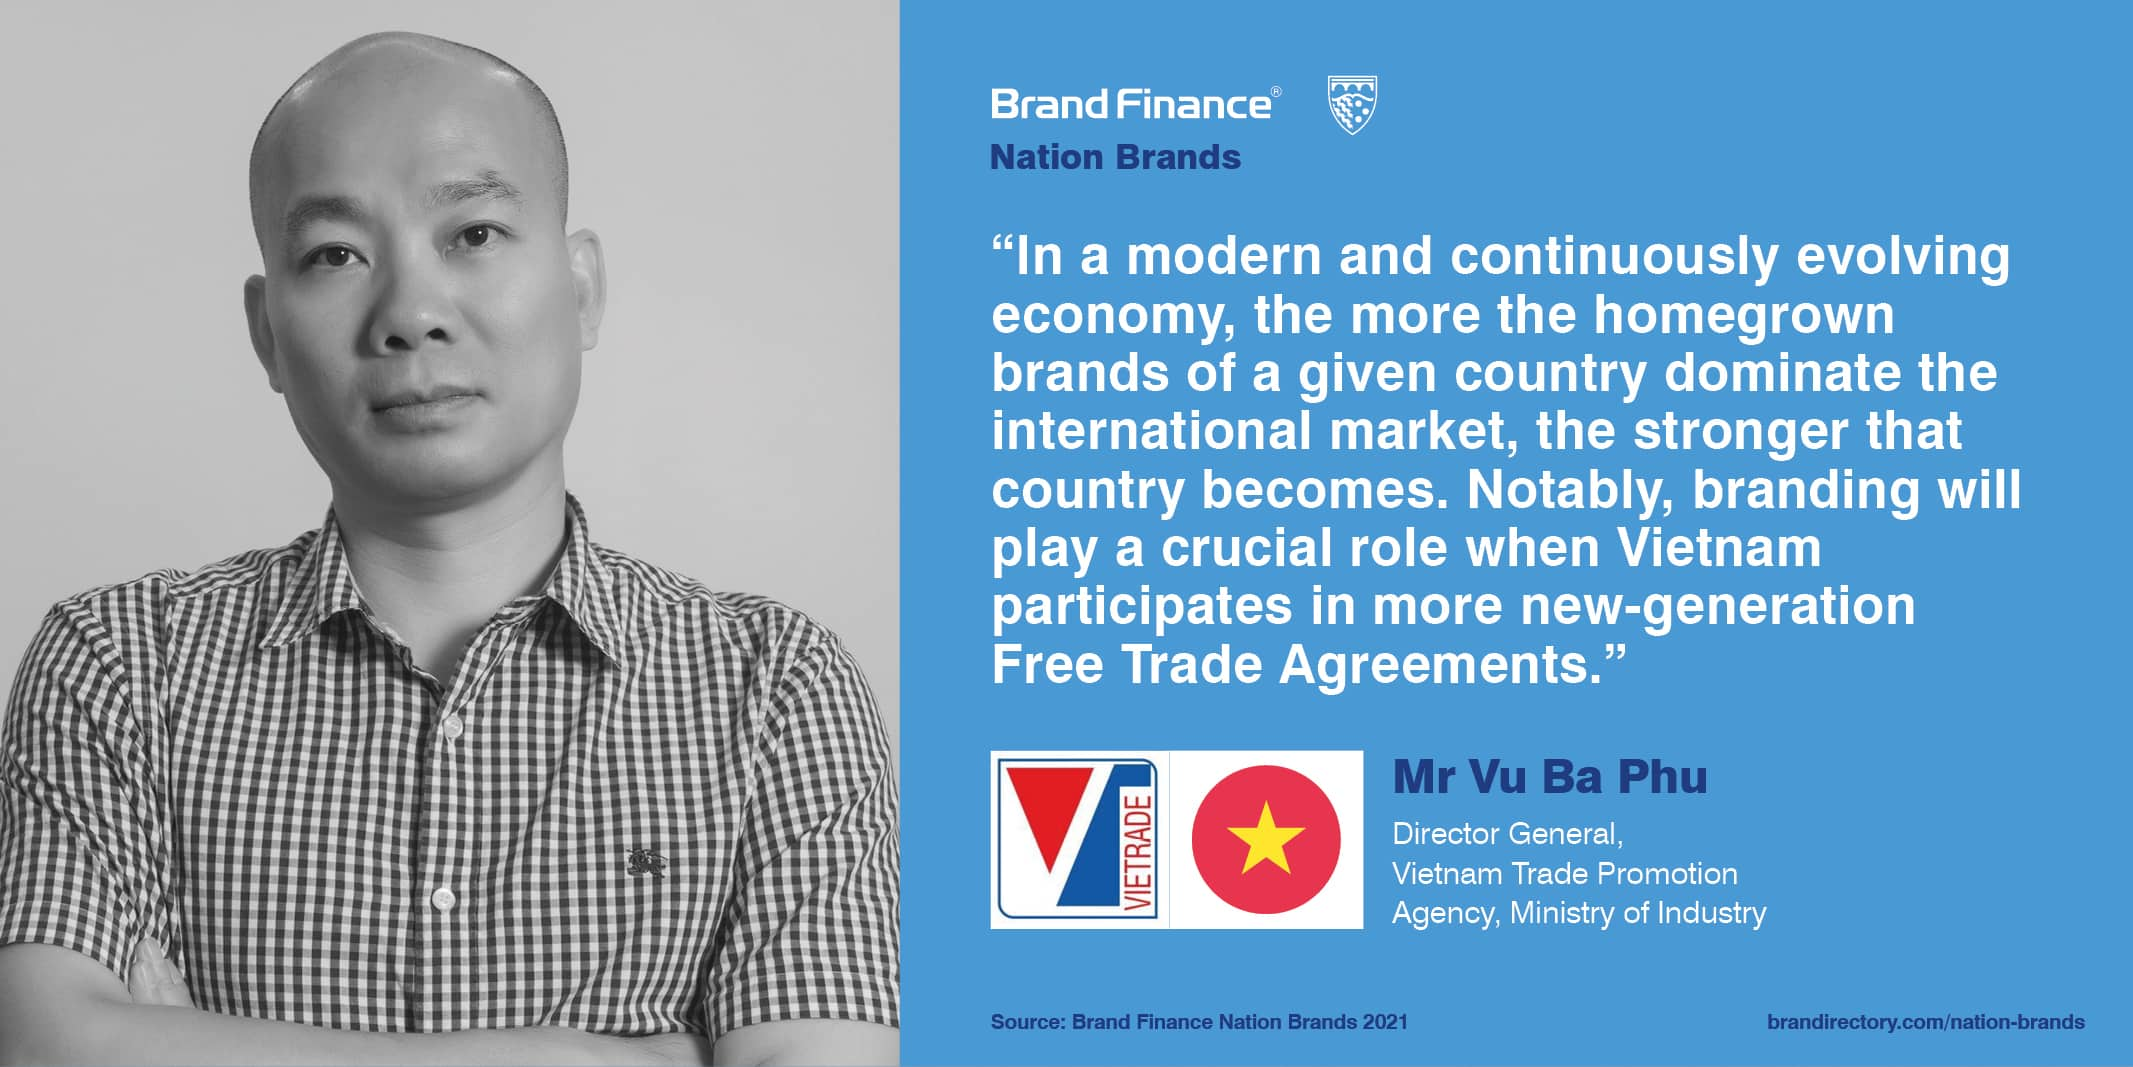 Mr Vu Ba Phu, Director General, MOIT Vietnam quote on the importance of a strong nation brand in a globalised world